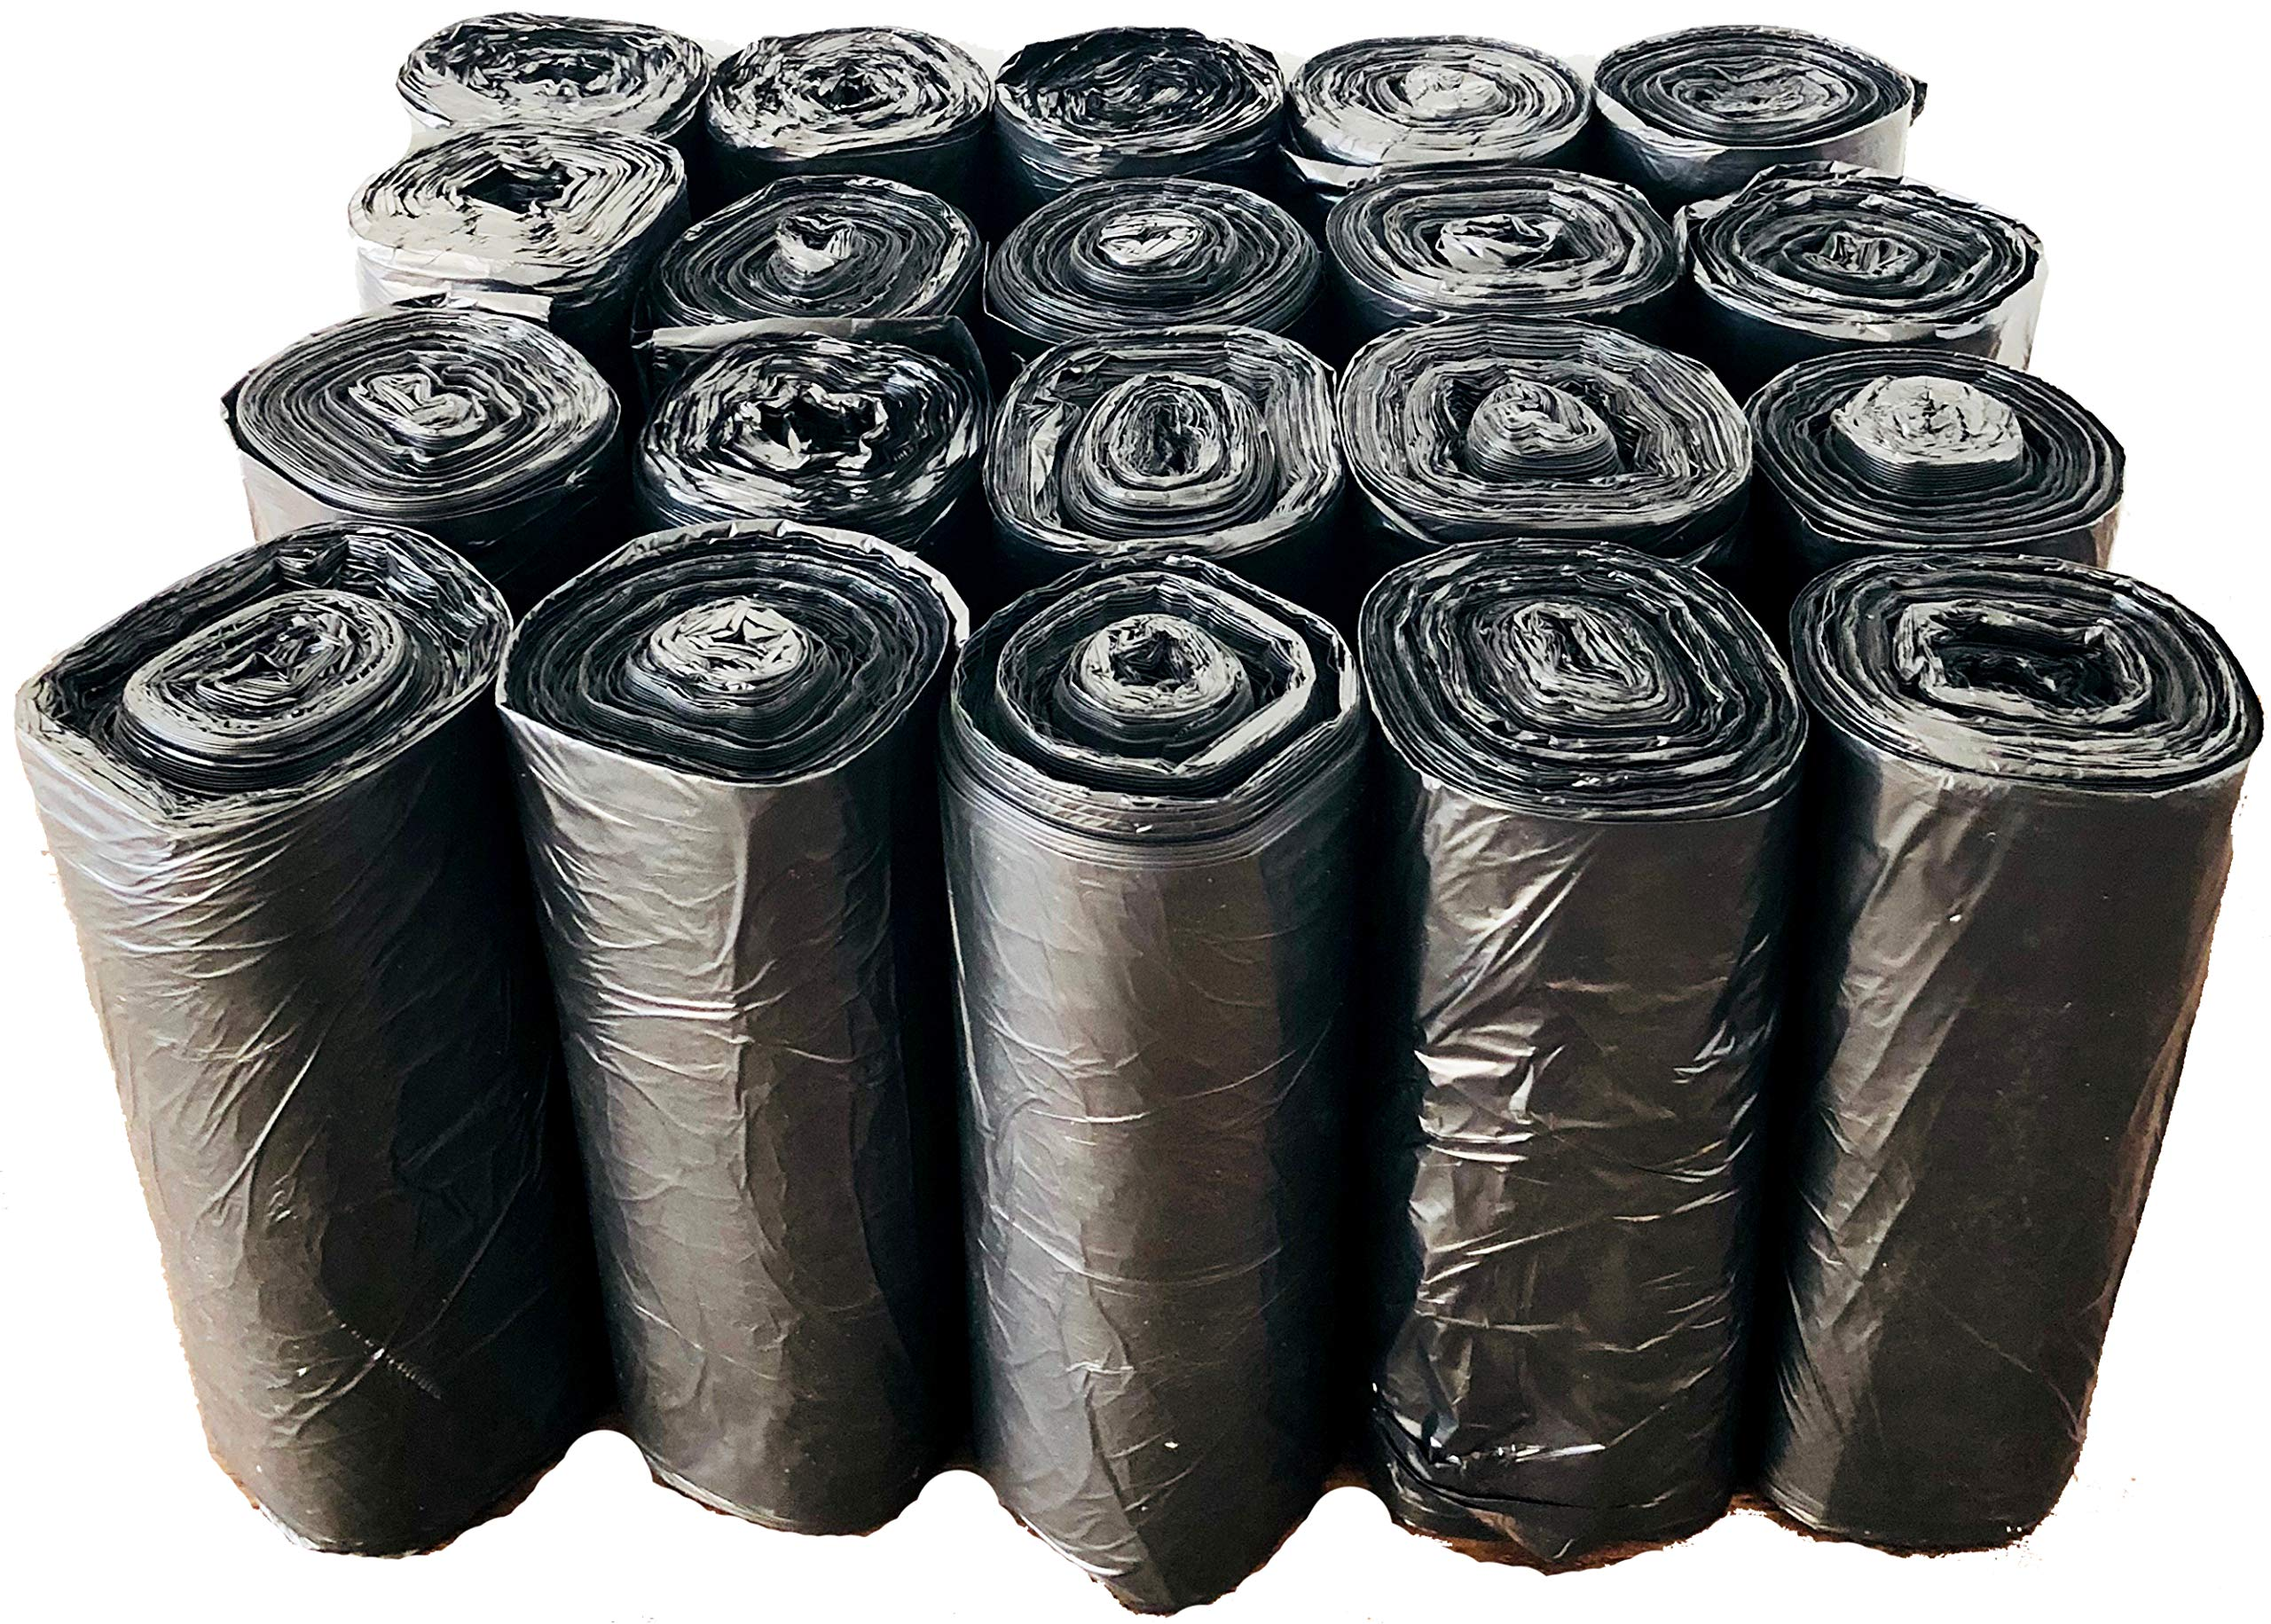 Reli. Trash Bags, 13 Gallon (Wholesale 1000 Count) (Black) - Can Liners, Garbage Bags with 13 Gallon (13 Gal) to 16 Gallon (16 Gal) Capacity by Reli. (Image #4)